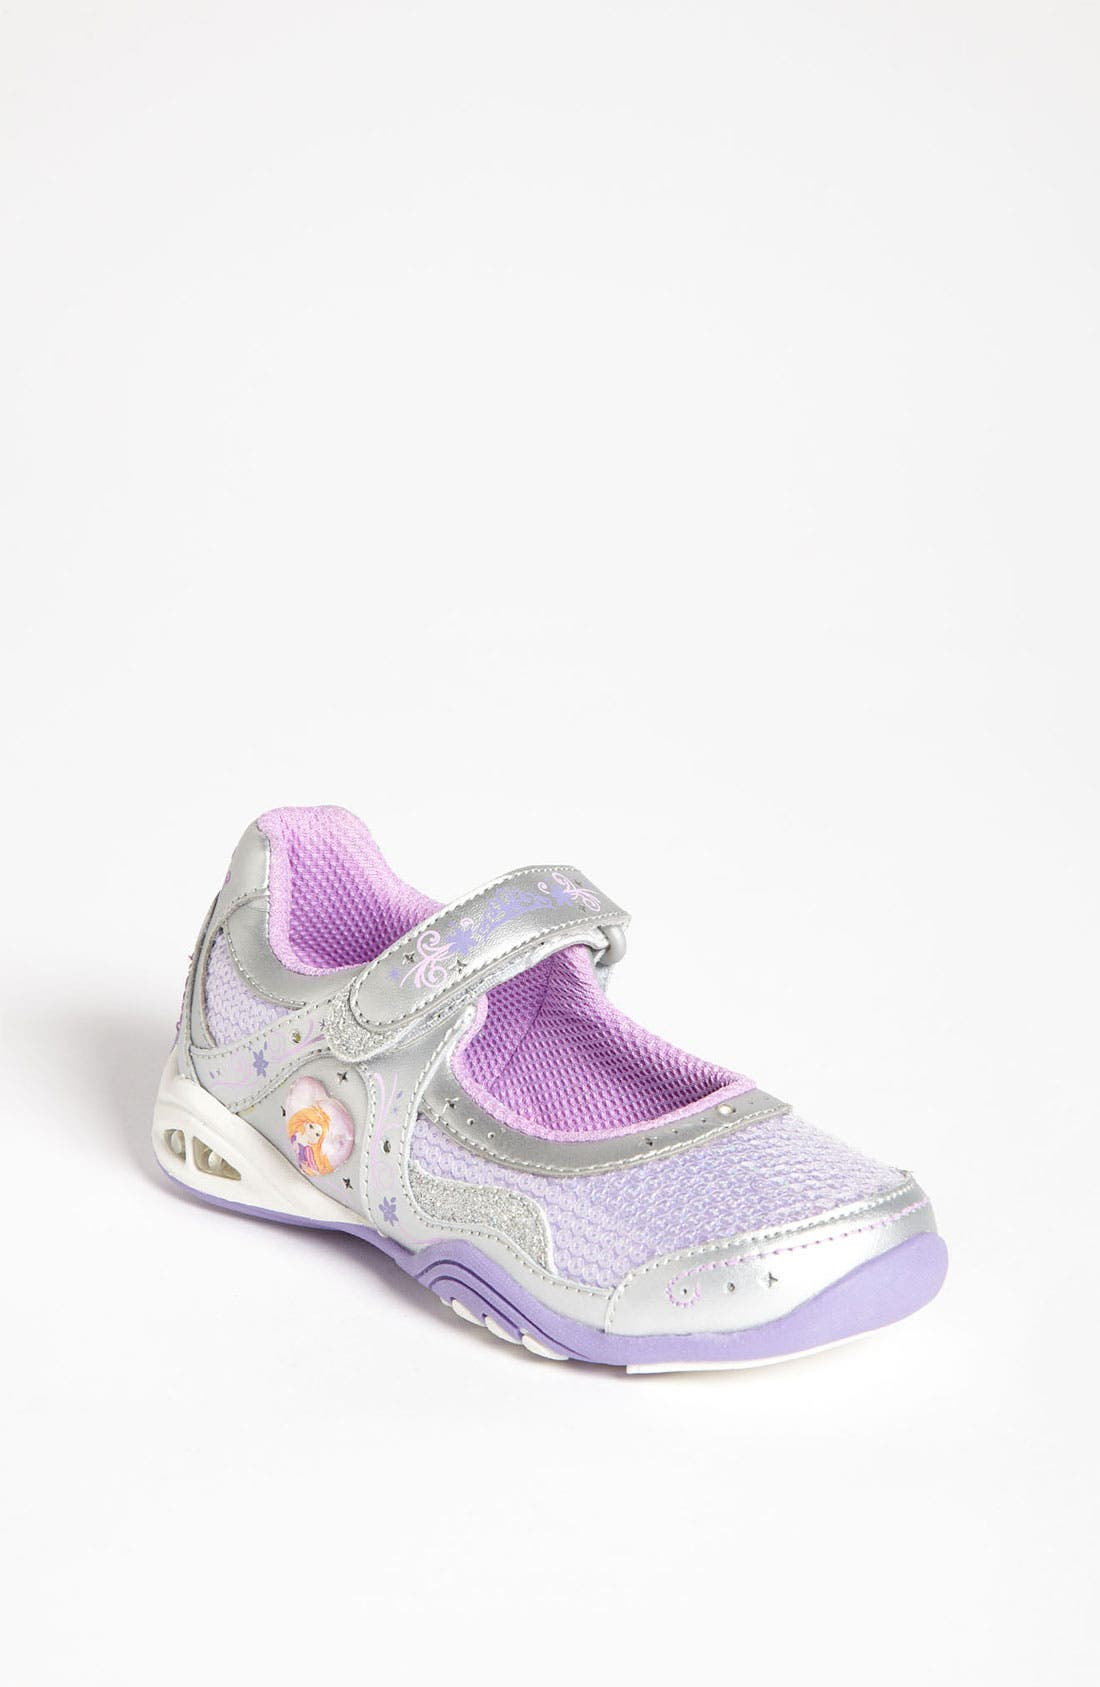 Alternate Image 1 Selected - Stride Rite 'Disney™ - Rapunzel' Mary Jane Sneaker (Toddler)